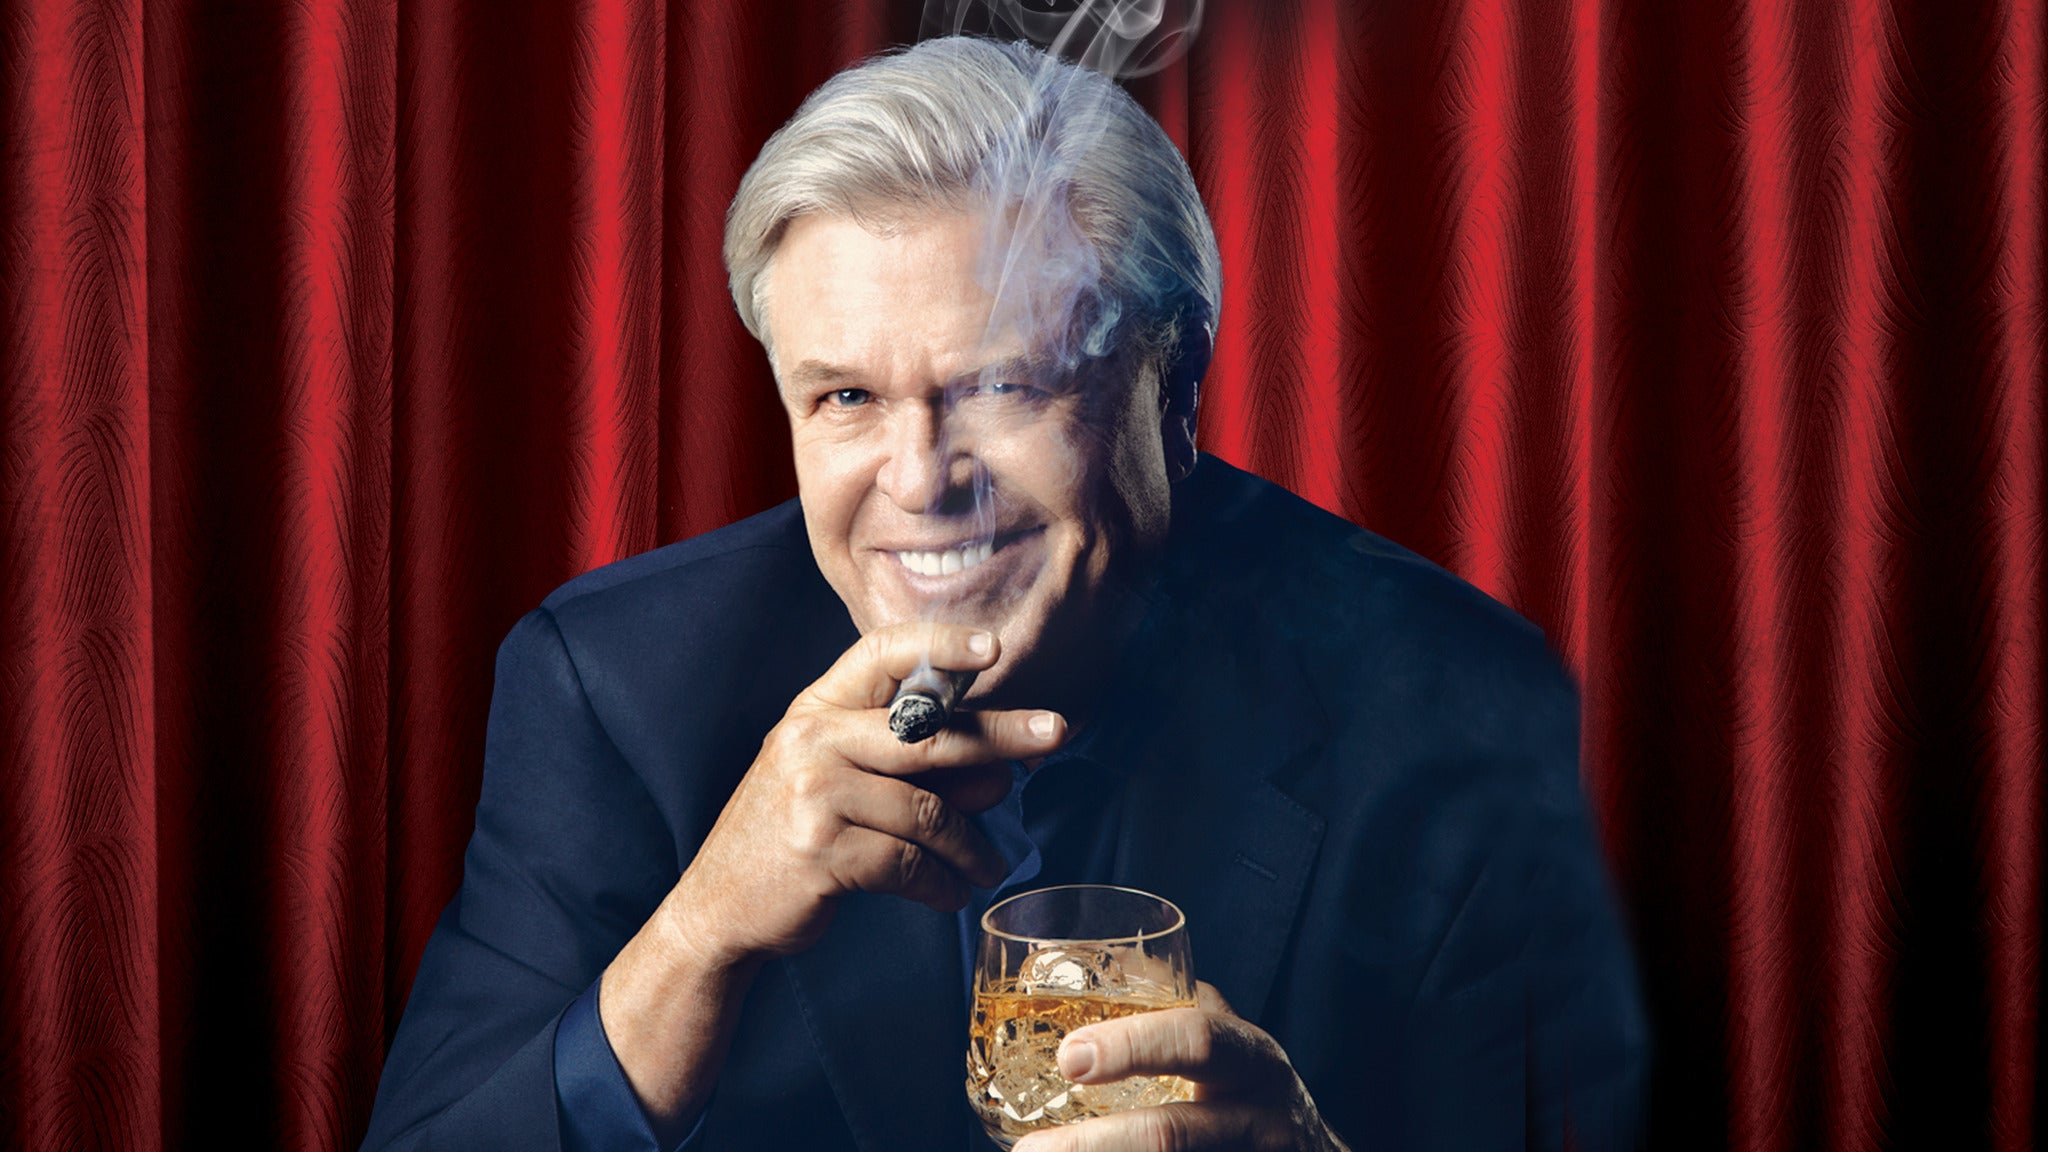 Ron White at The Peabody Daytona Beach